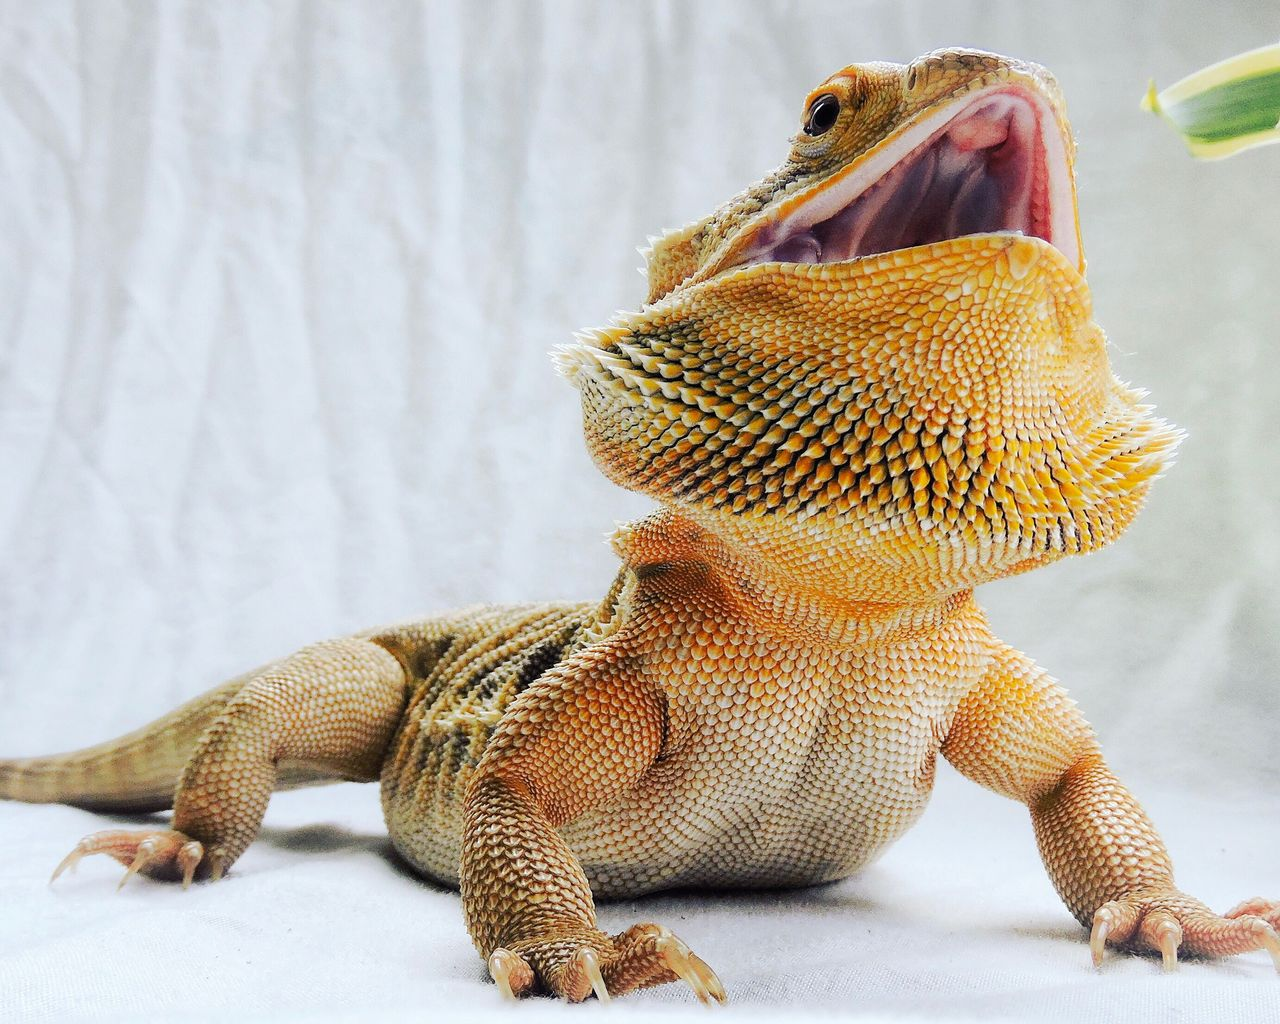 Bearded Dragon One Animal Close-up Animal Themes No People Indoors  Reptile Day Close Up Reptile Reptile Photography Lizard Animal Pet Spiked Open Mouth Mouth Open Detail Yellow Orange Leatherback Australian Wildlife Animal Head